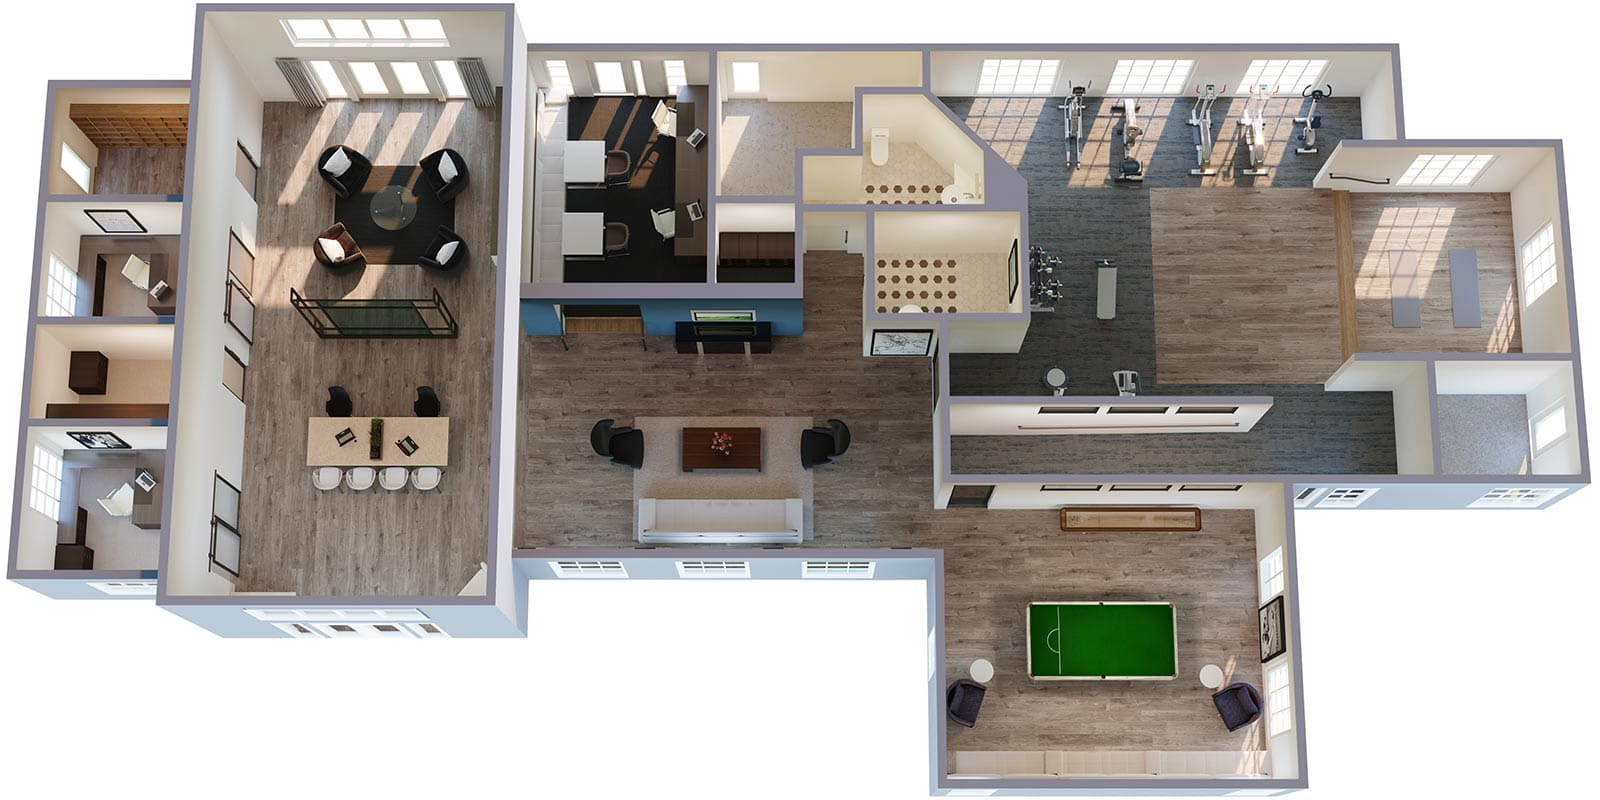 3D Floorplan of Breckenridge Community Center